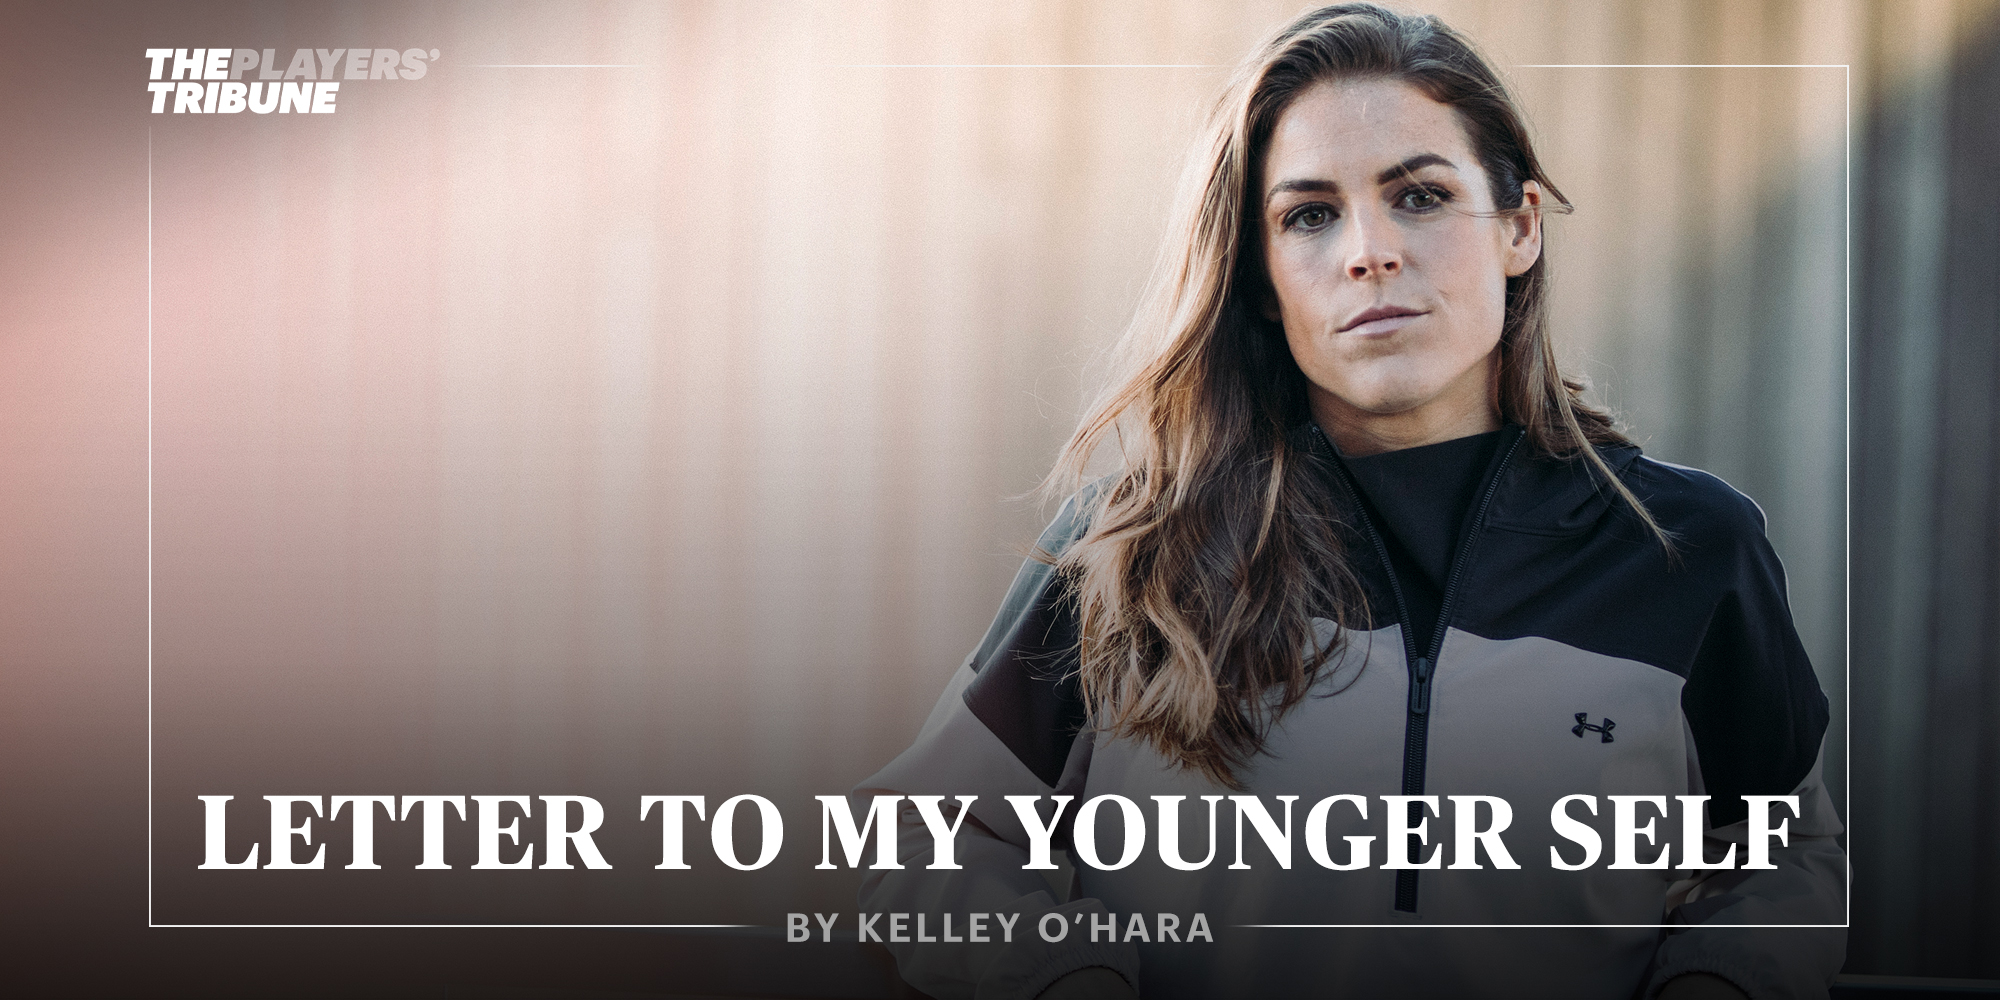 Letter to My Younger Self | By Kelley O'Hara